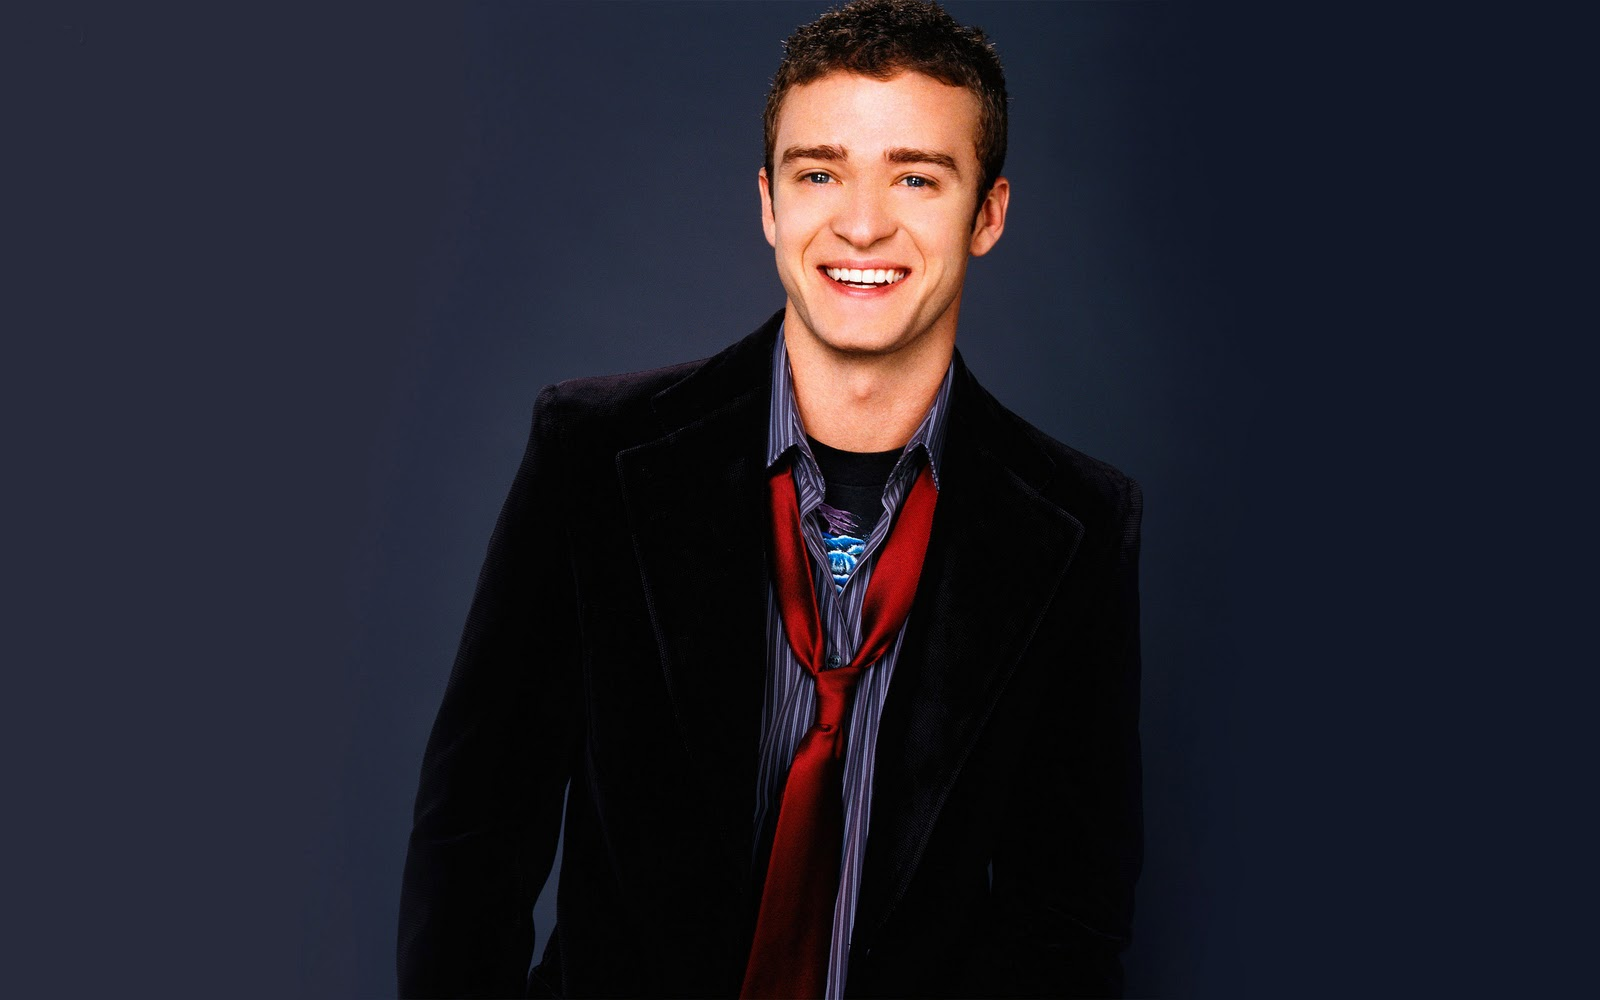 http://1.bp.blogspot.com/-ZGkcOT1ryIU/TuowBmn5GMI/AAAAAAAAAzo/p8YYOeEm1Fs/s1600/Justin-Timberlake-pictures-pc-desktop-Wallpapers-HD-photo-images-11.jpg